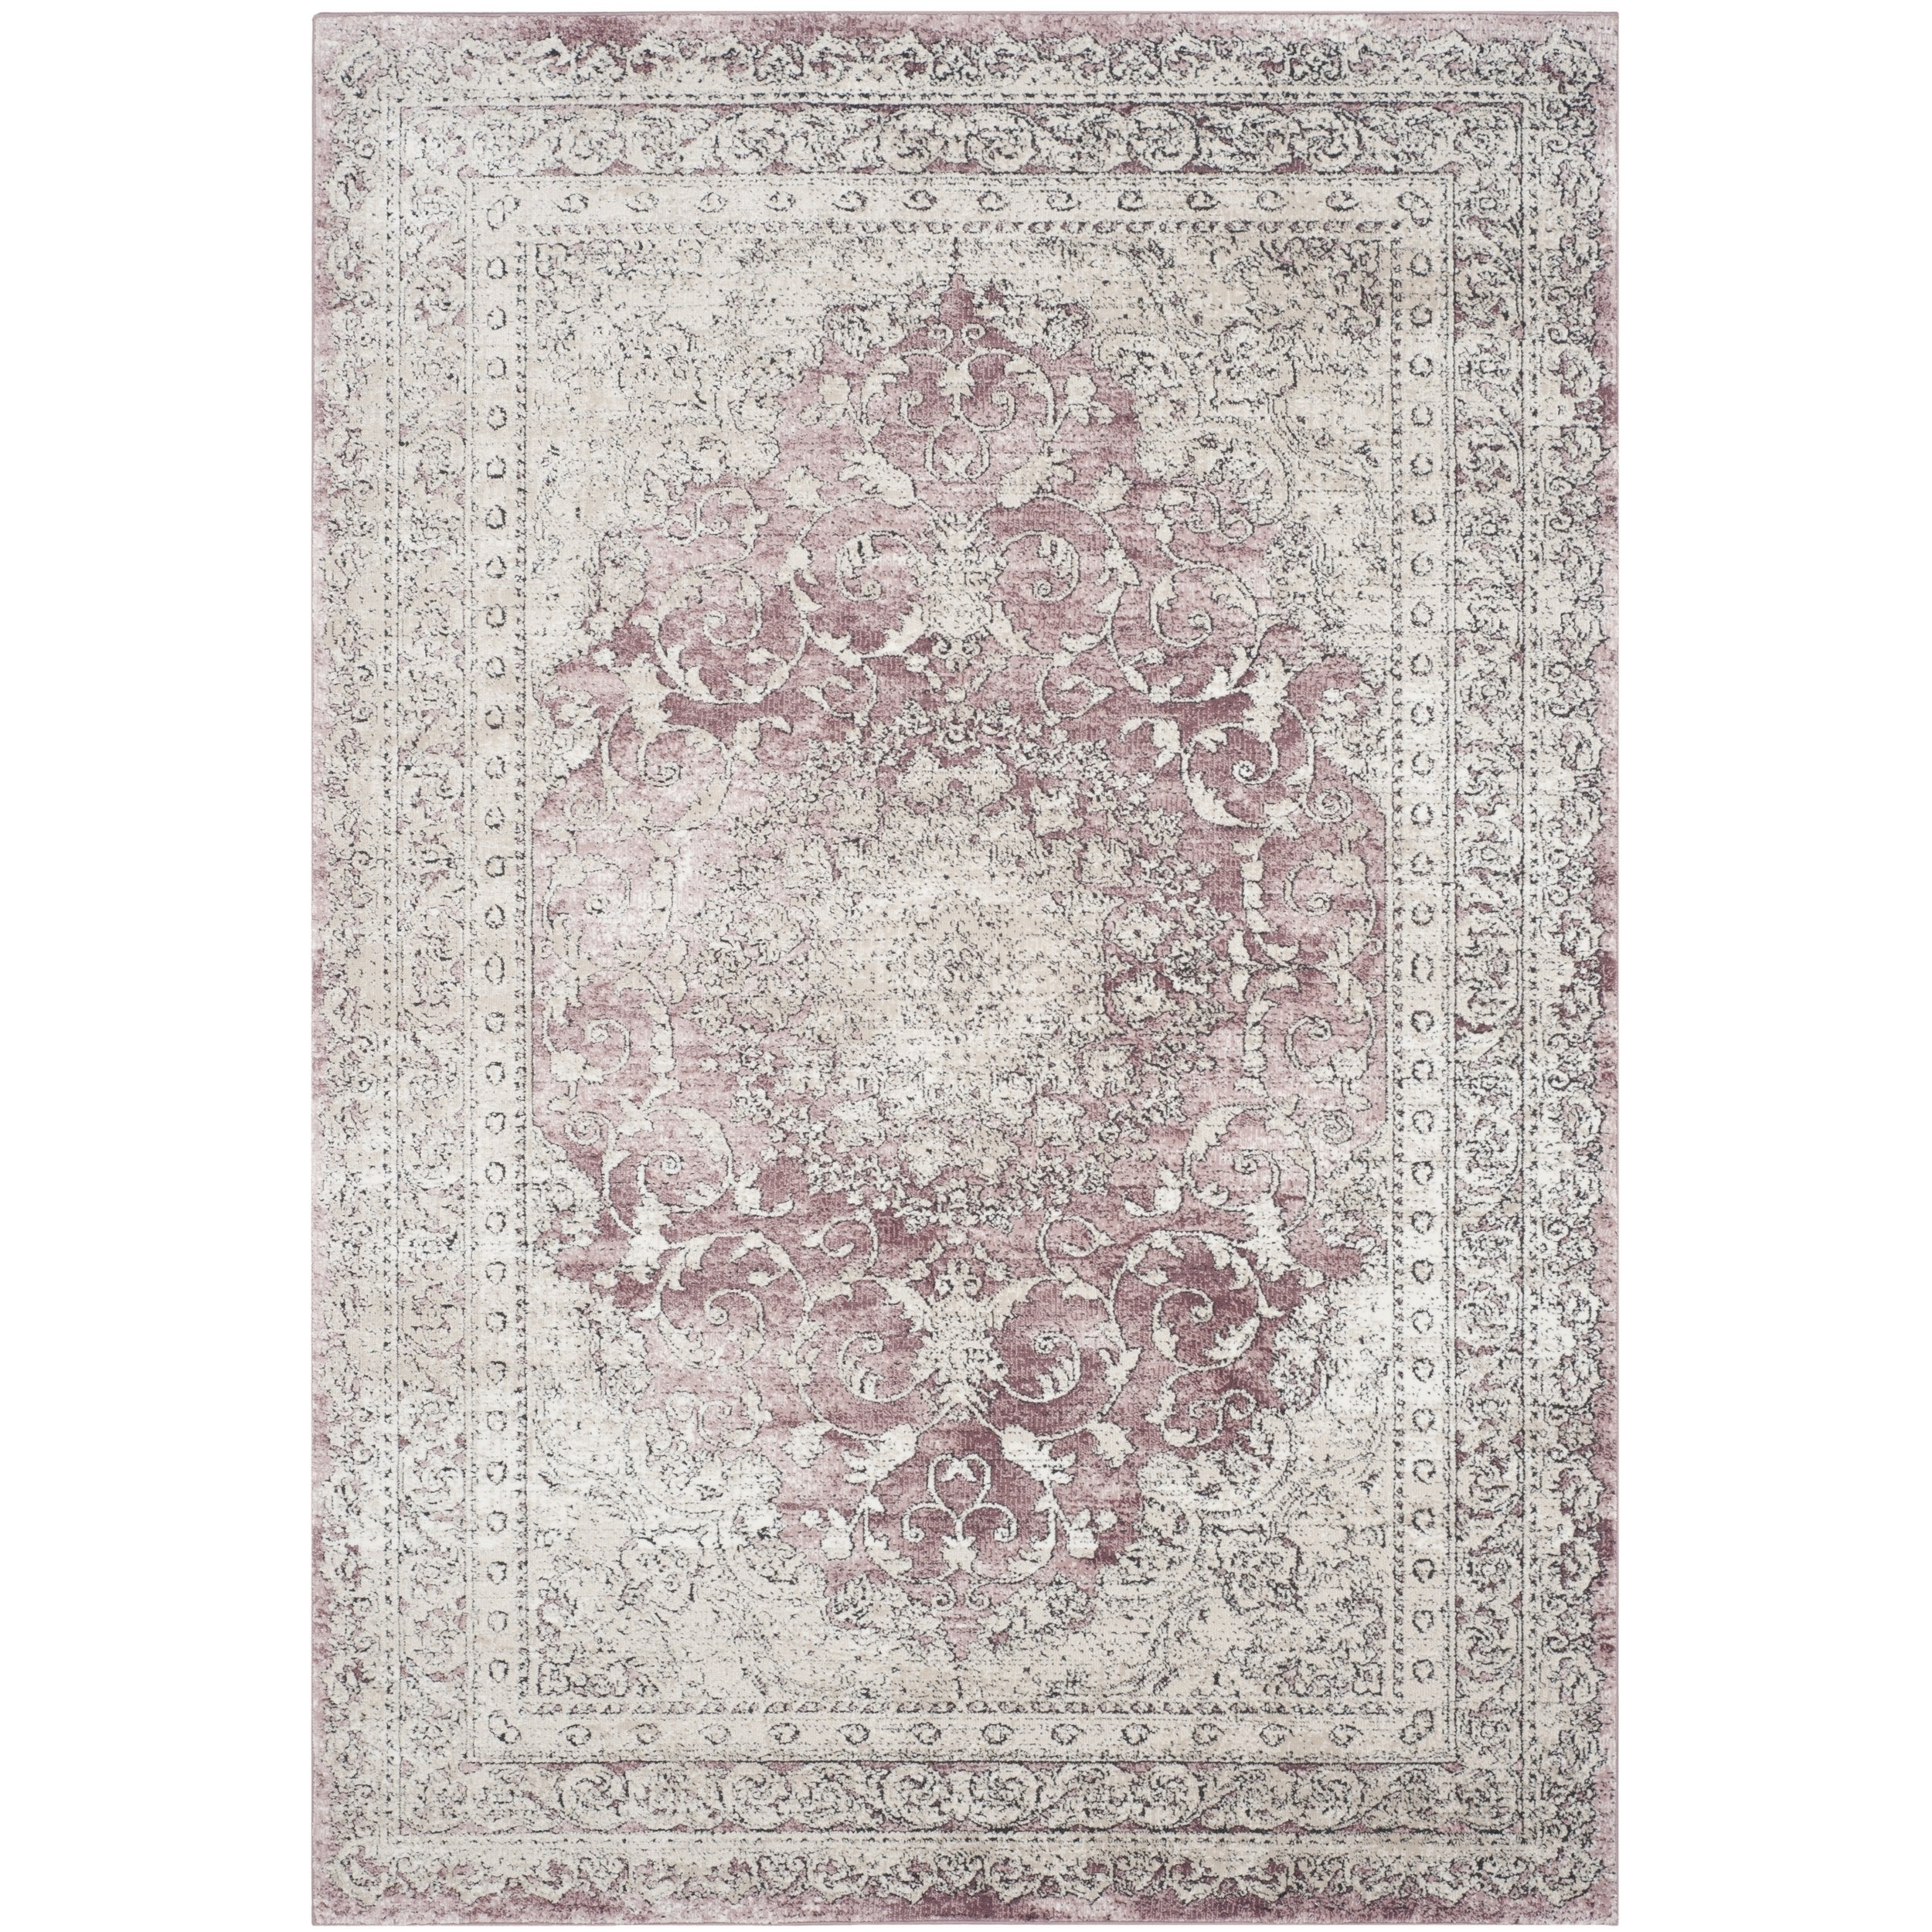 rug x garden mohawk tamur heirloom on area shipping product free orders home